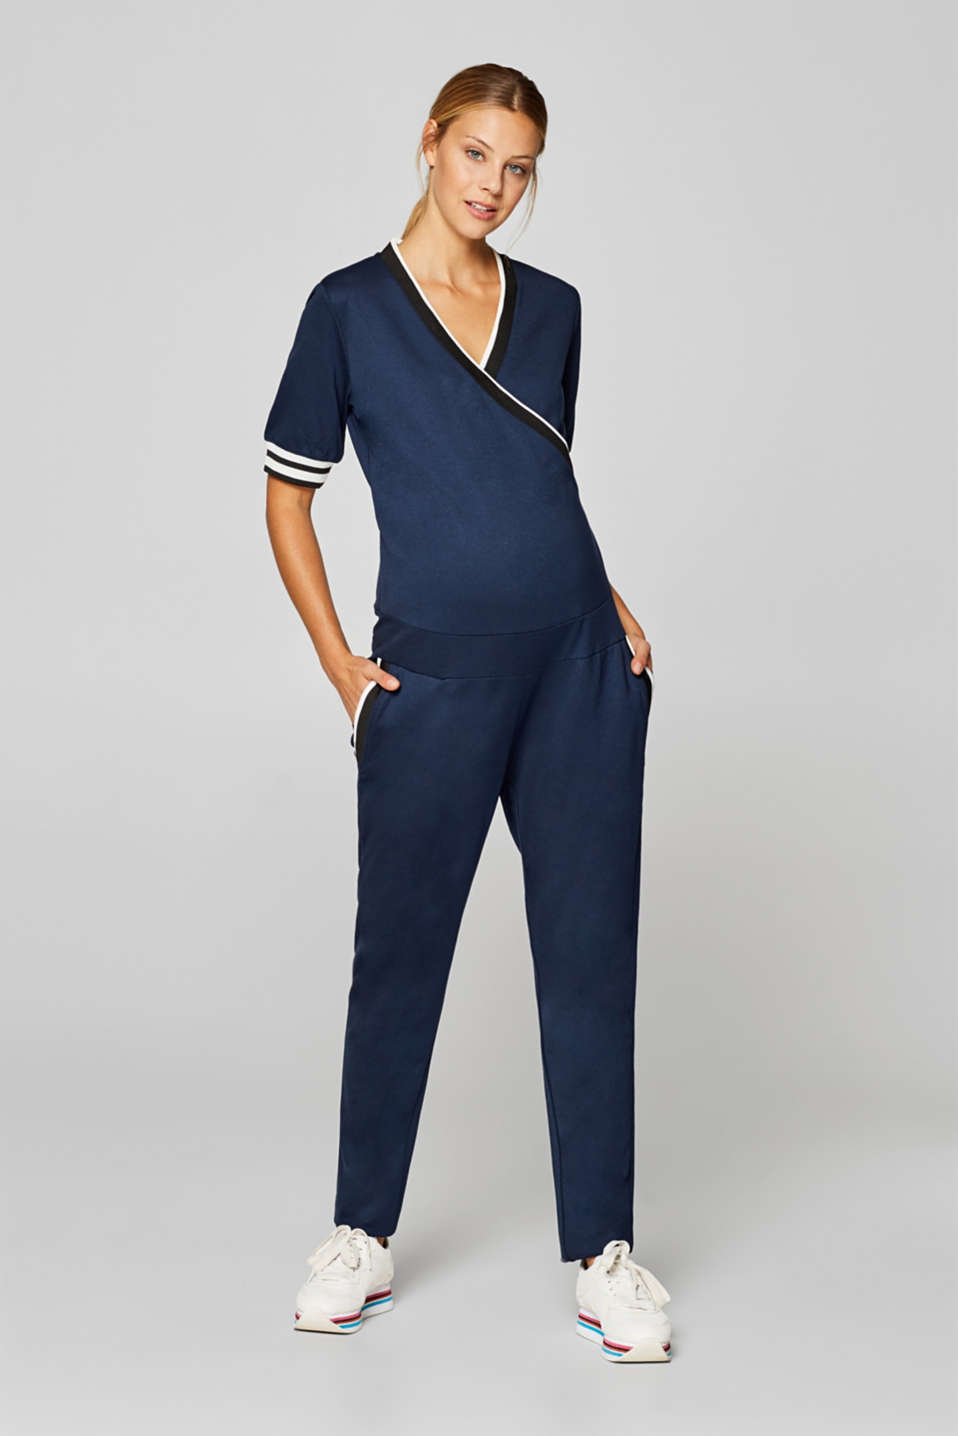 Esprit - Stretch jersey jumpsuit with an under-bump waistband